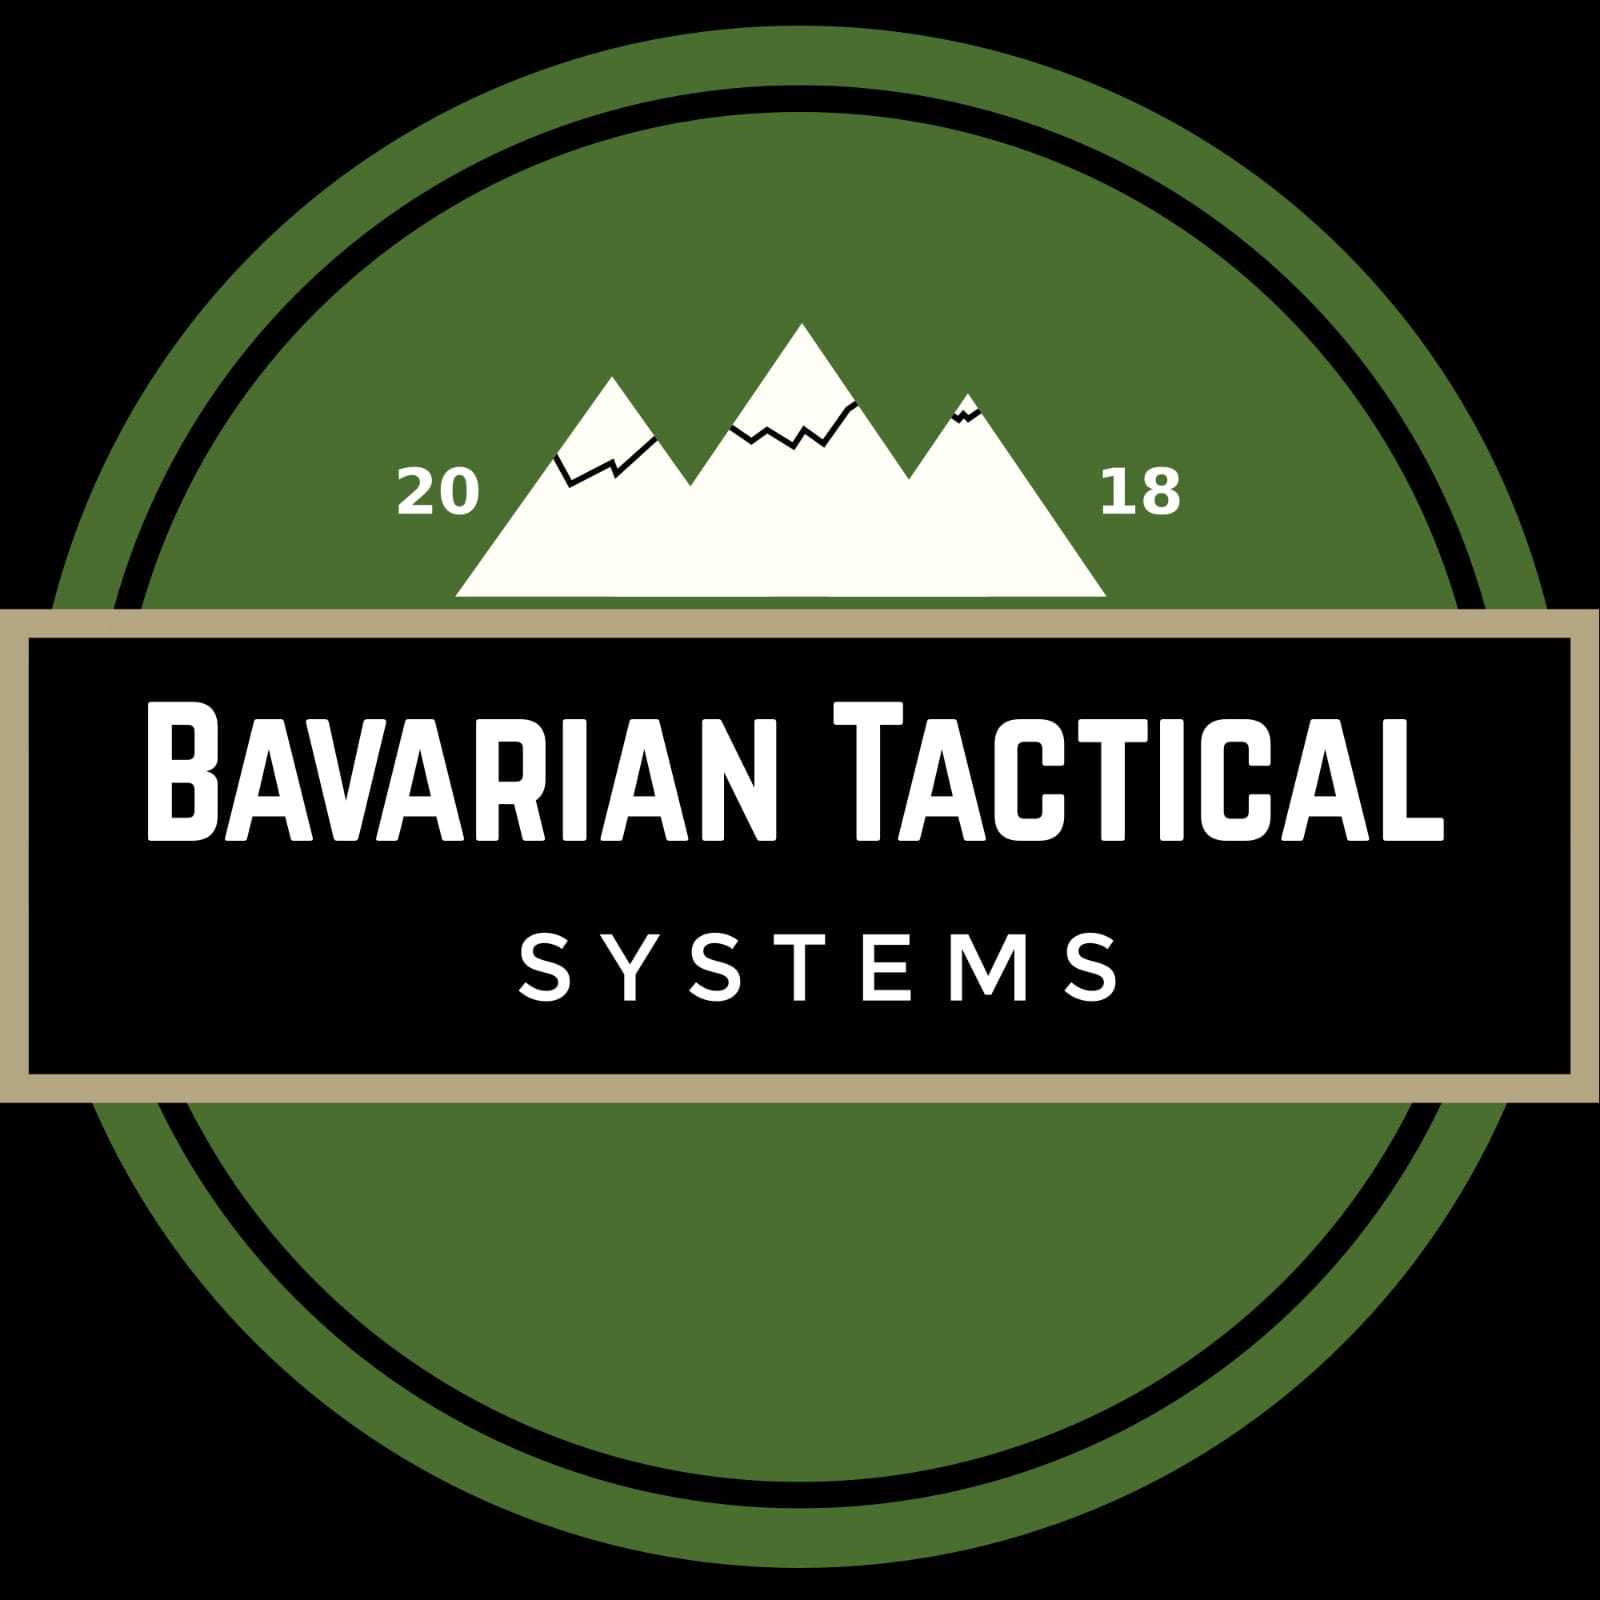 Bavarian Tactical Systems